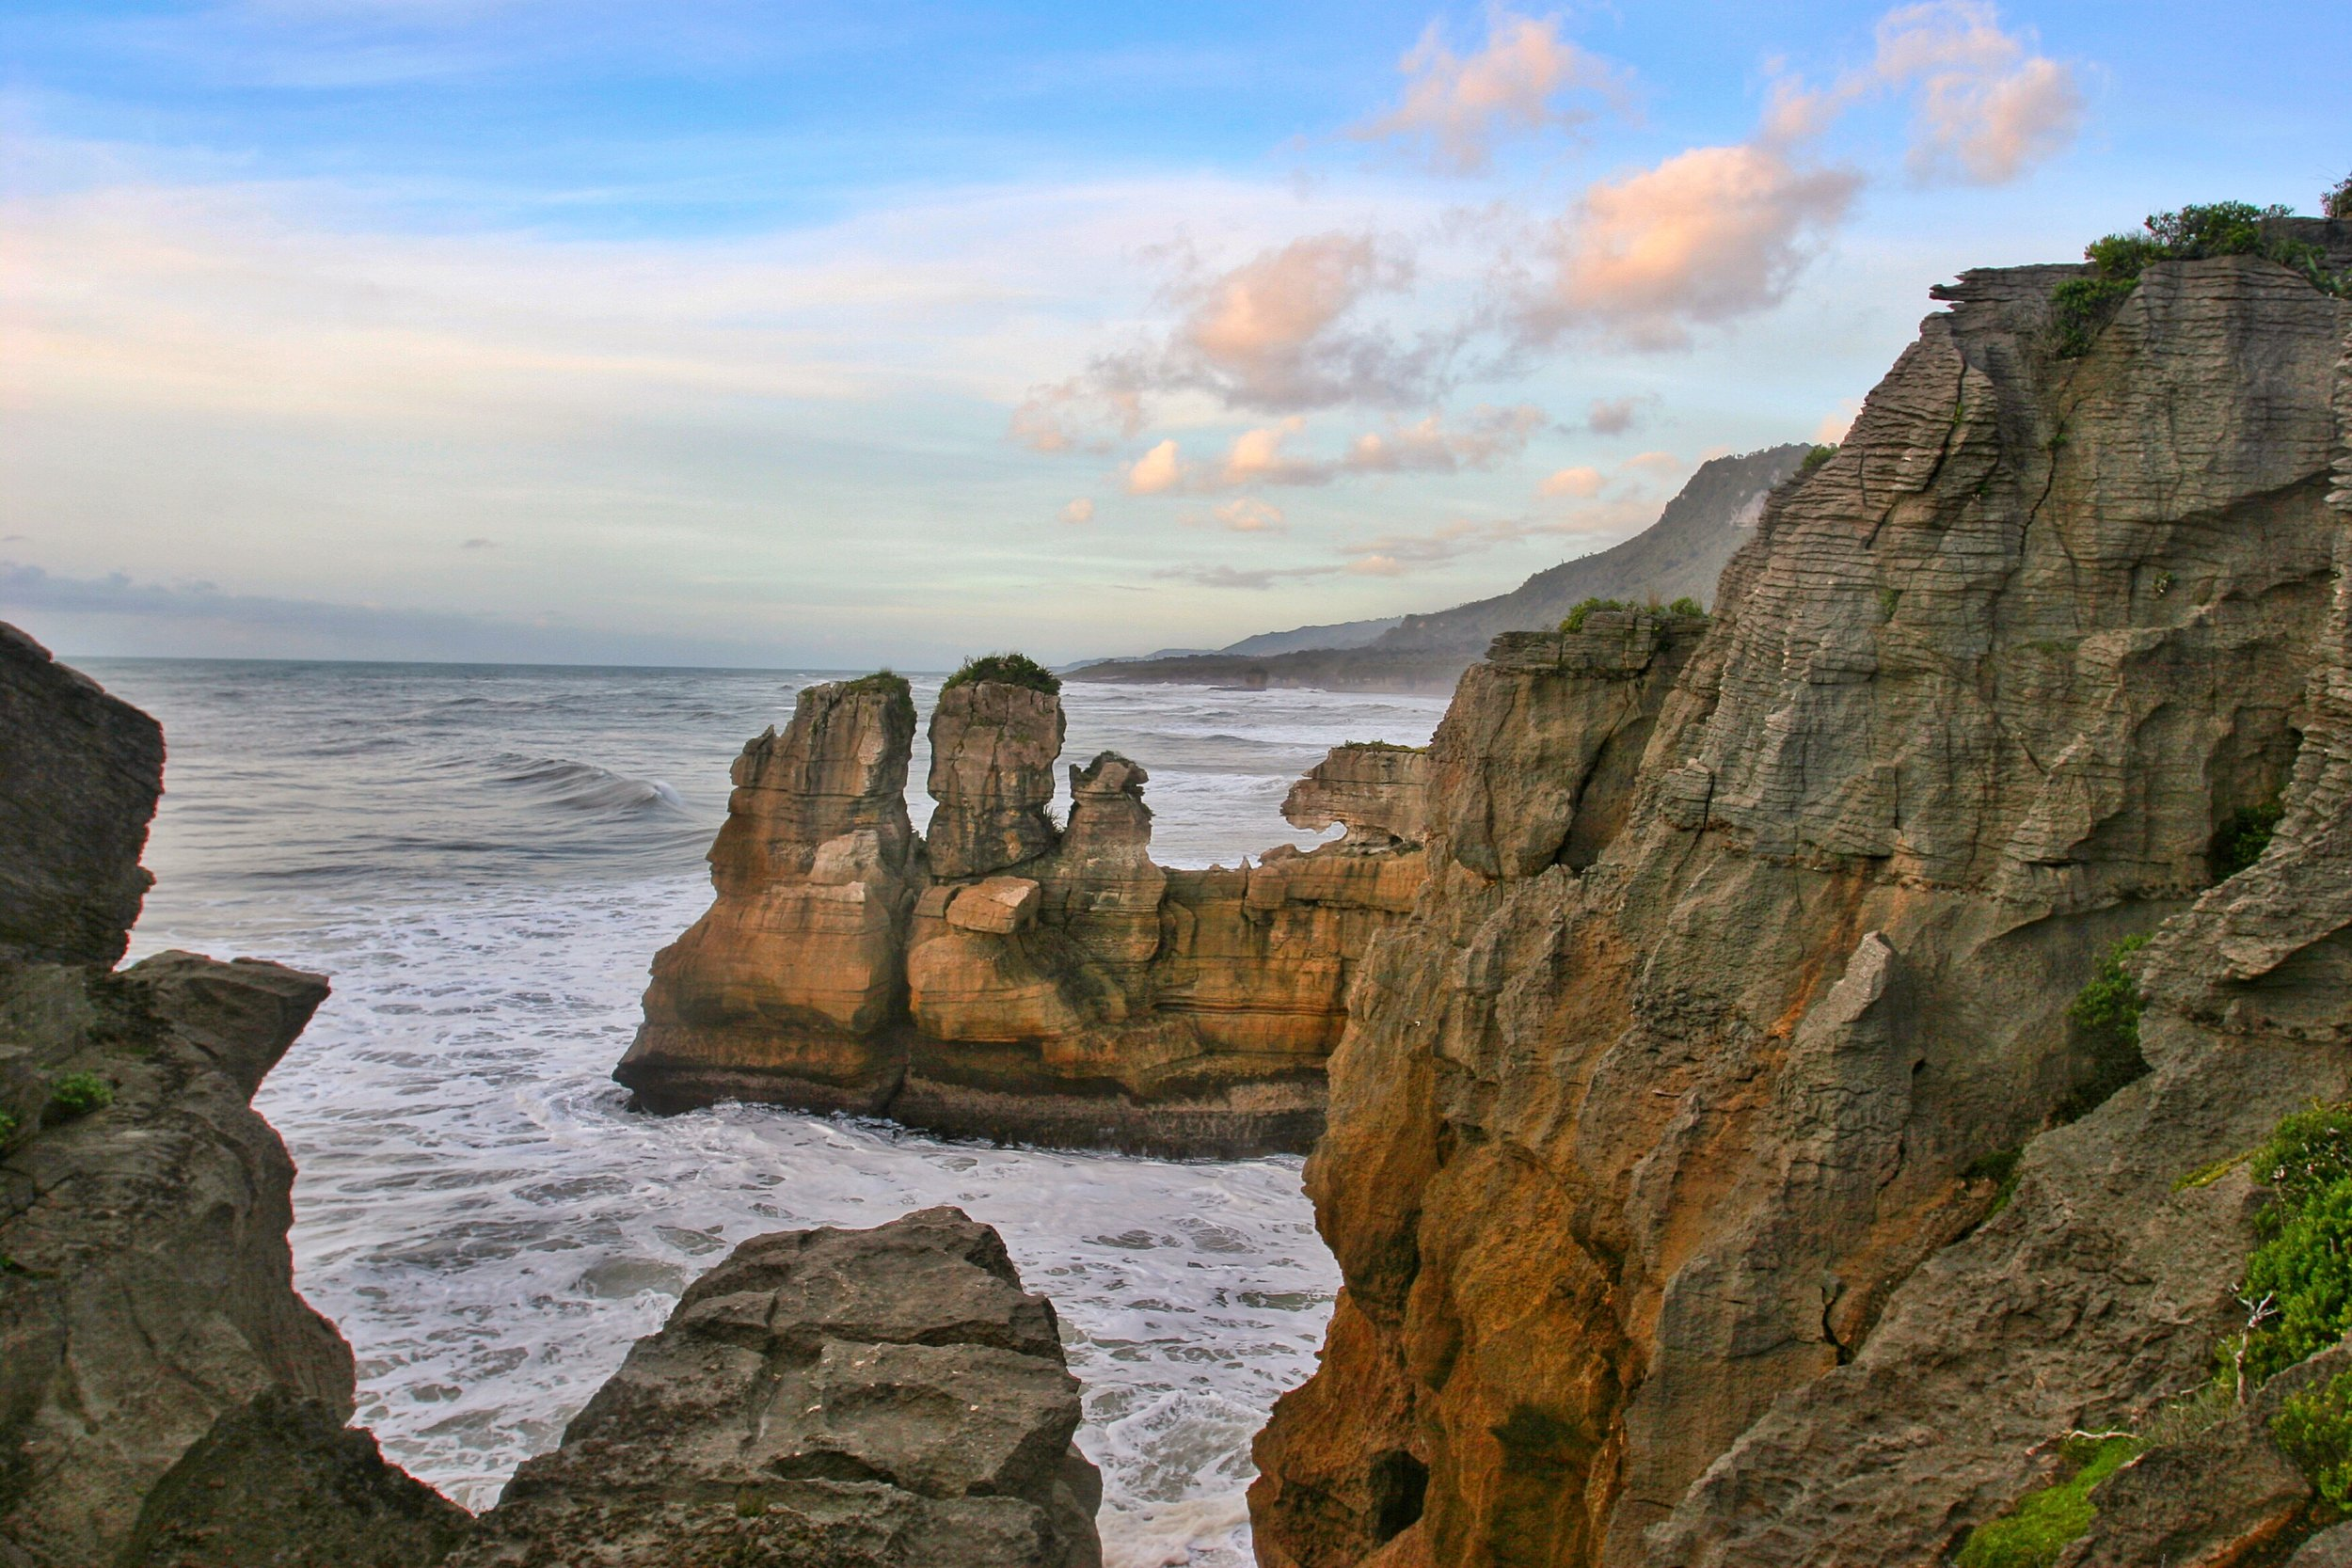 From the loop trail in the National Park, there are great views of the west coast of New Zealand's South Island